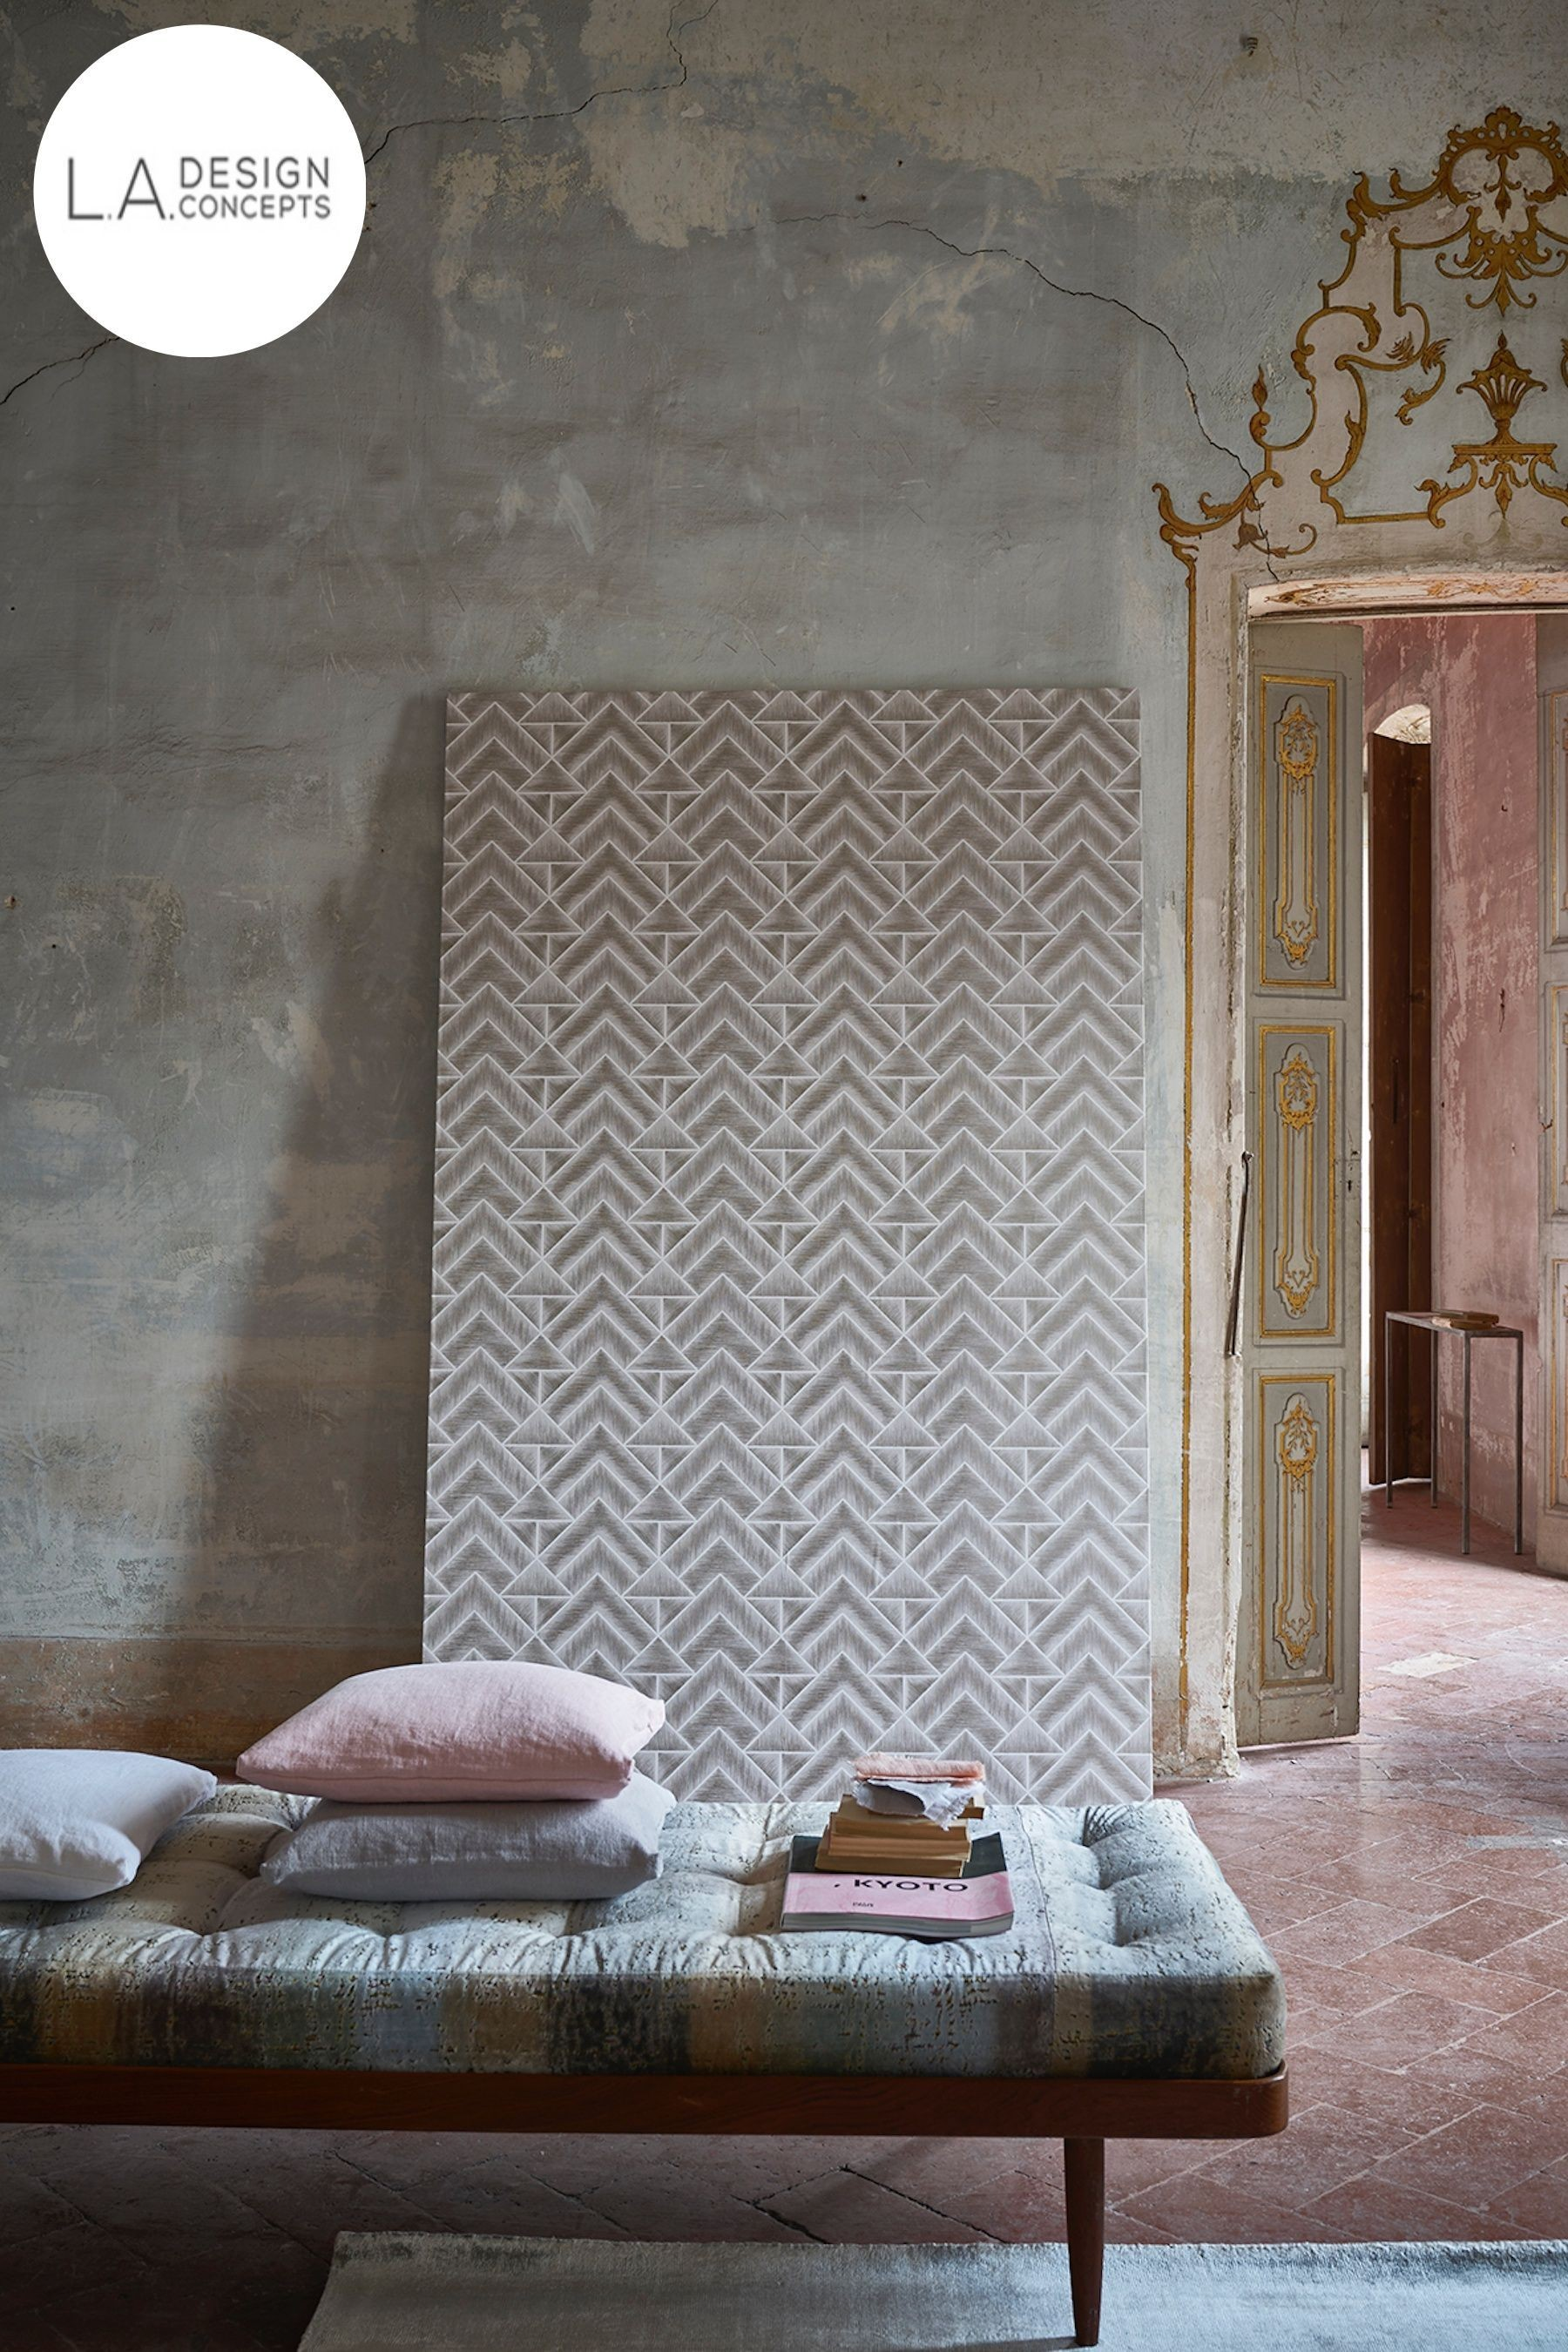 DESIGNERS GUILD WALLPAPER Mandora Heather These wallpapers can be used for dining rooms